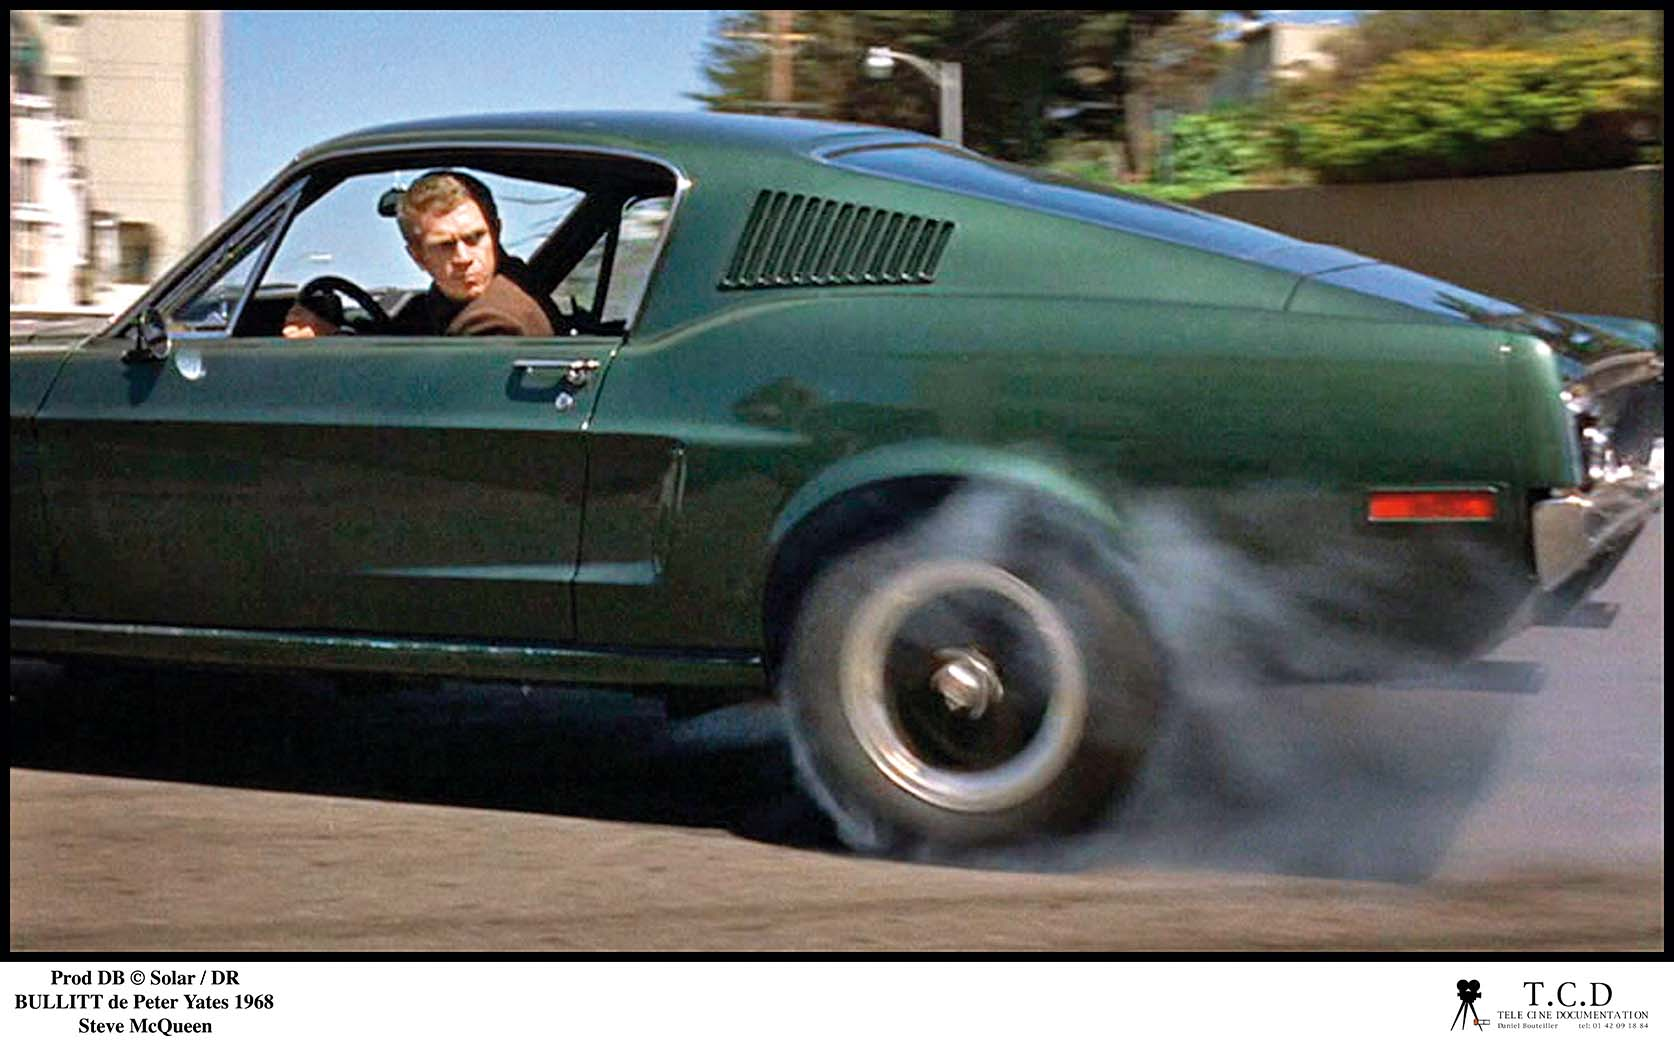 Prod DB © Solar / DR BULLITT (BULLITT) de Peter Yates 1968 USA avec Steve McQueen ford mustang de 1968, derapage controle, fumee, freiner d'apres le roman de Robert L. Pike, Image: 173074275, License: Rights-managed, Restrictions: NO RESTRICTION, Model Release: no, Credit line: T.C.D / Visual movies / Profimedia